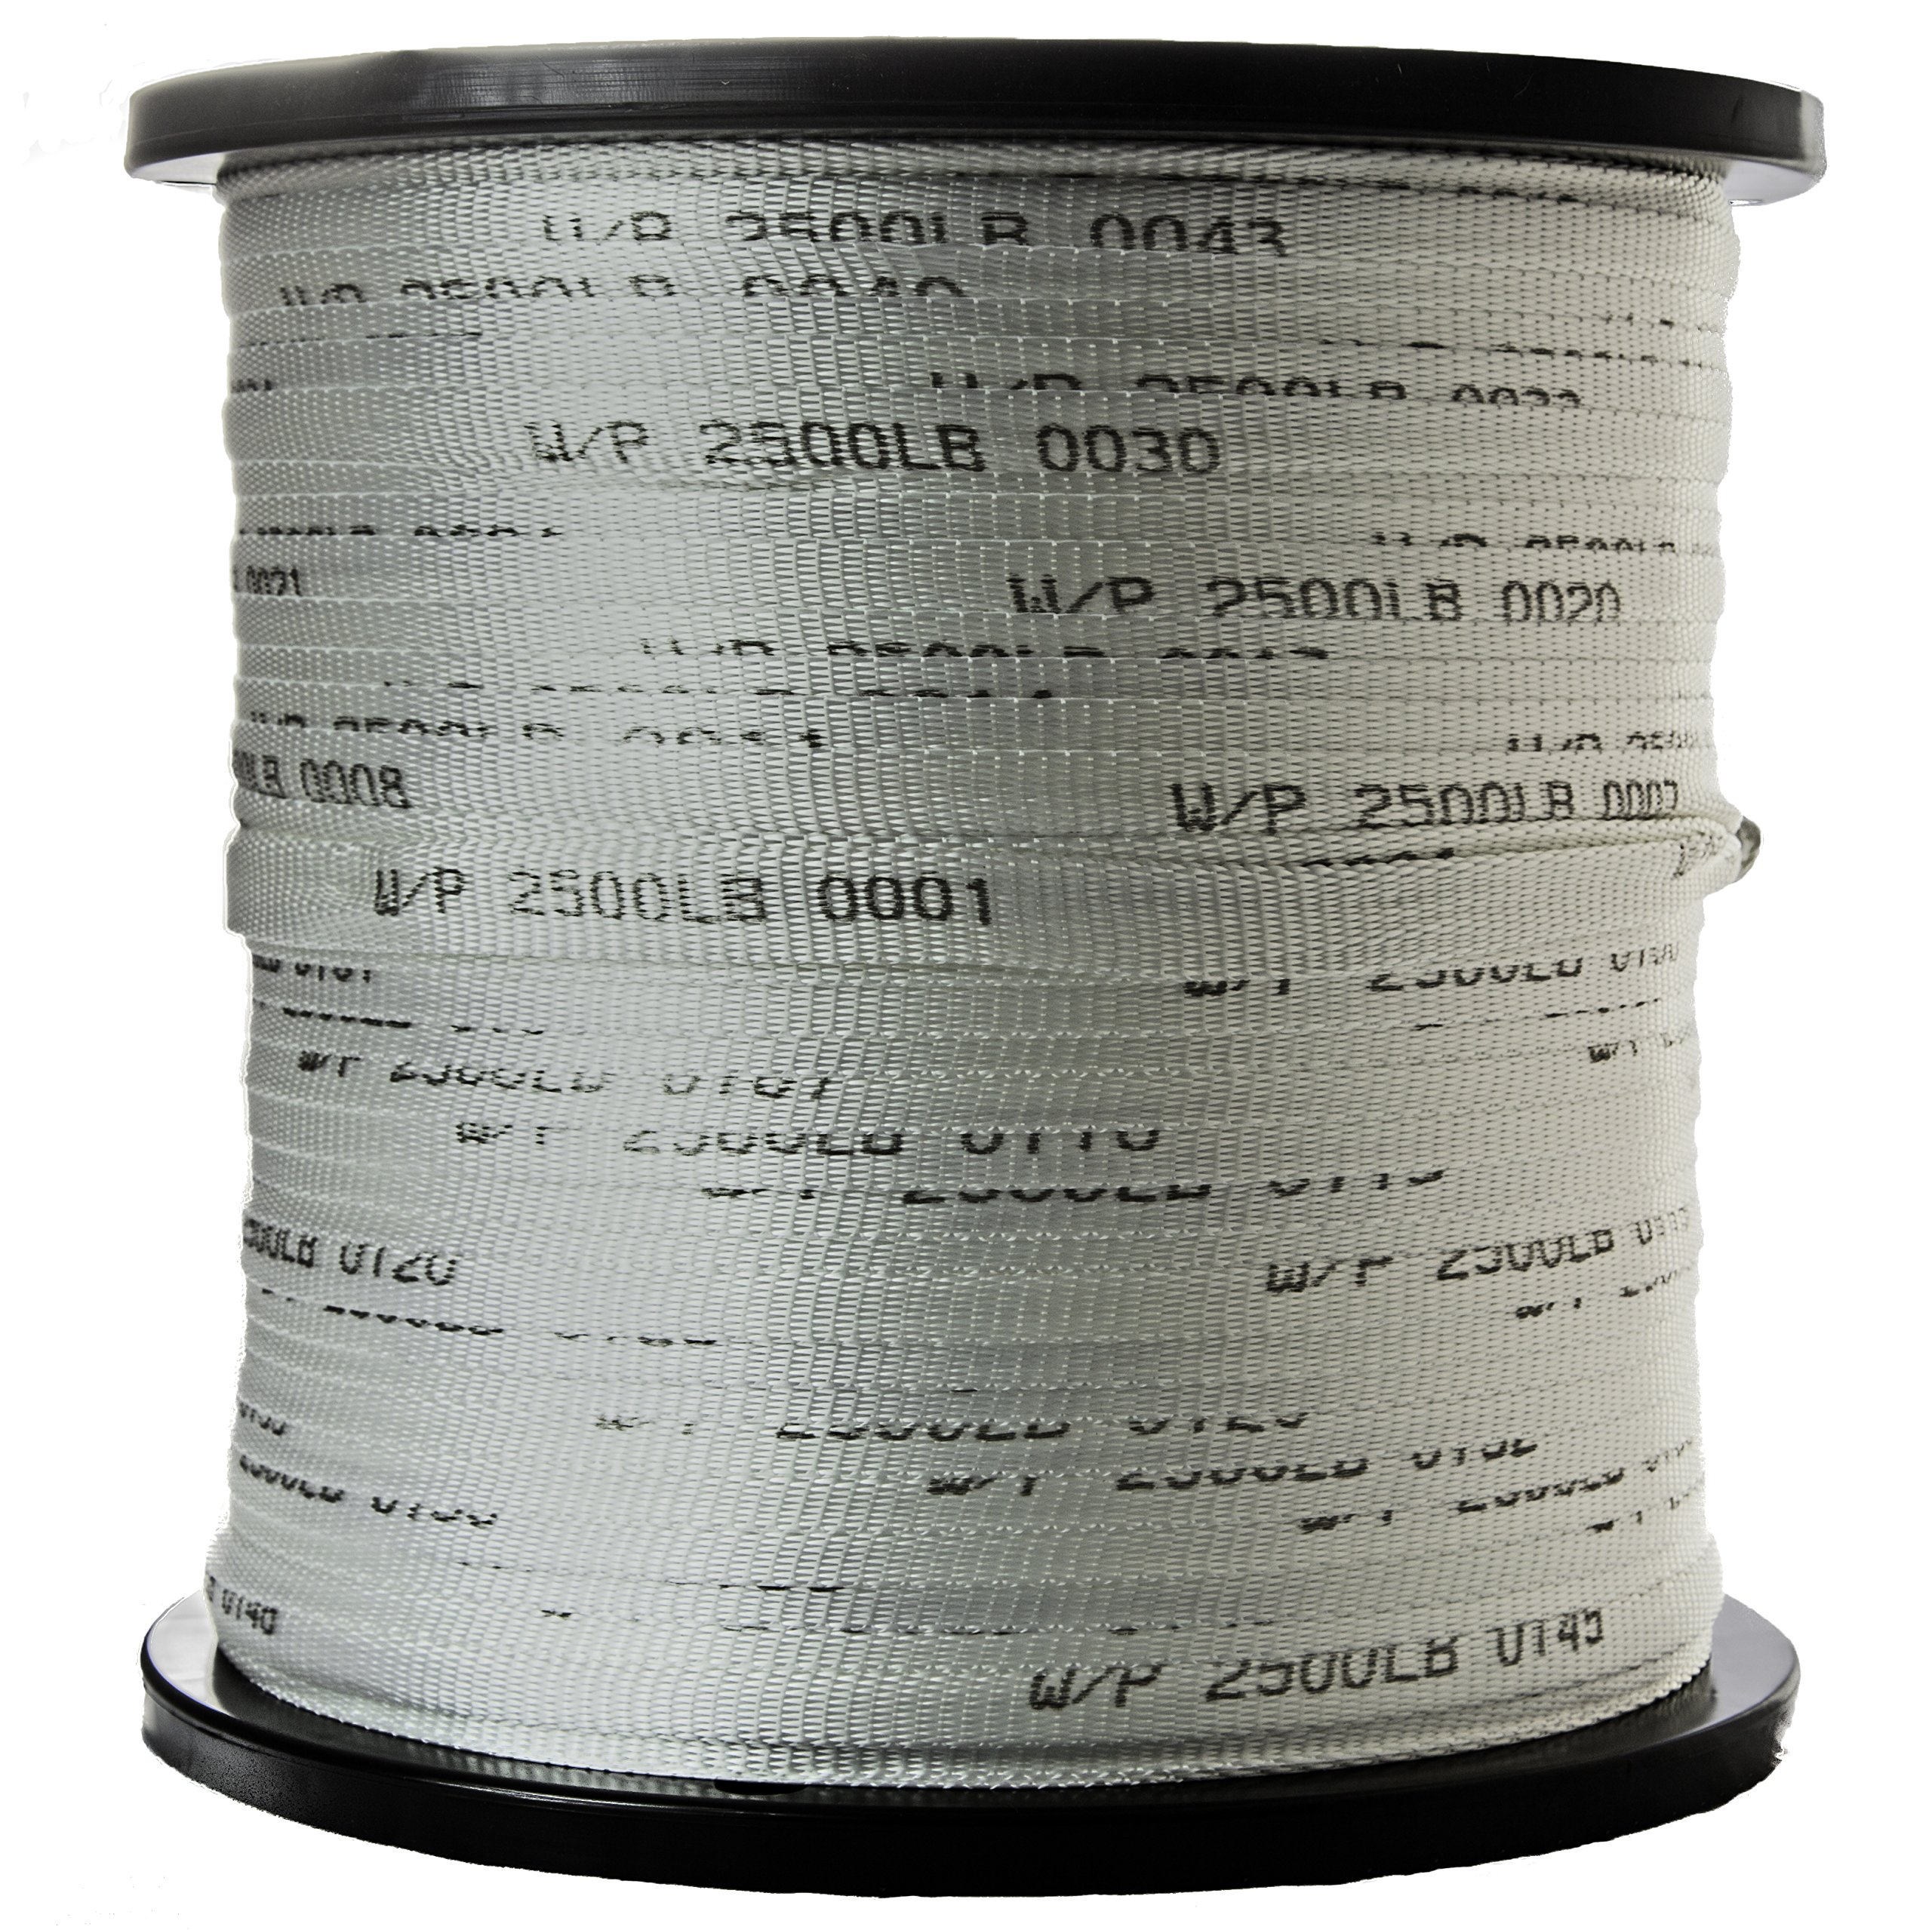 3/4'' x 3000' 2500 Lb Polyester Pull Tape / Pulling Tape - USA Made (500', 1000', 3000', & 5000' Options) by The Ribbon Factory